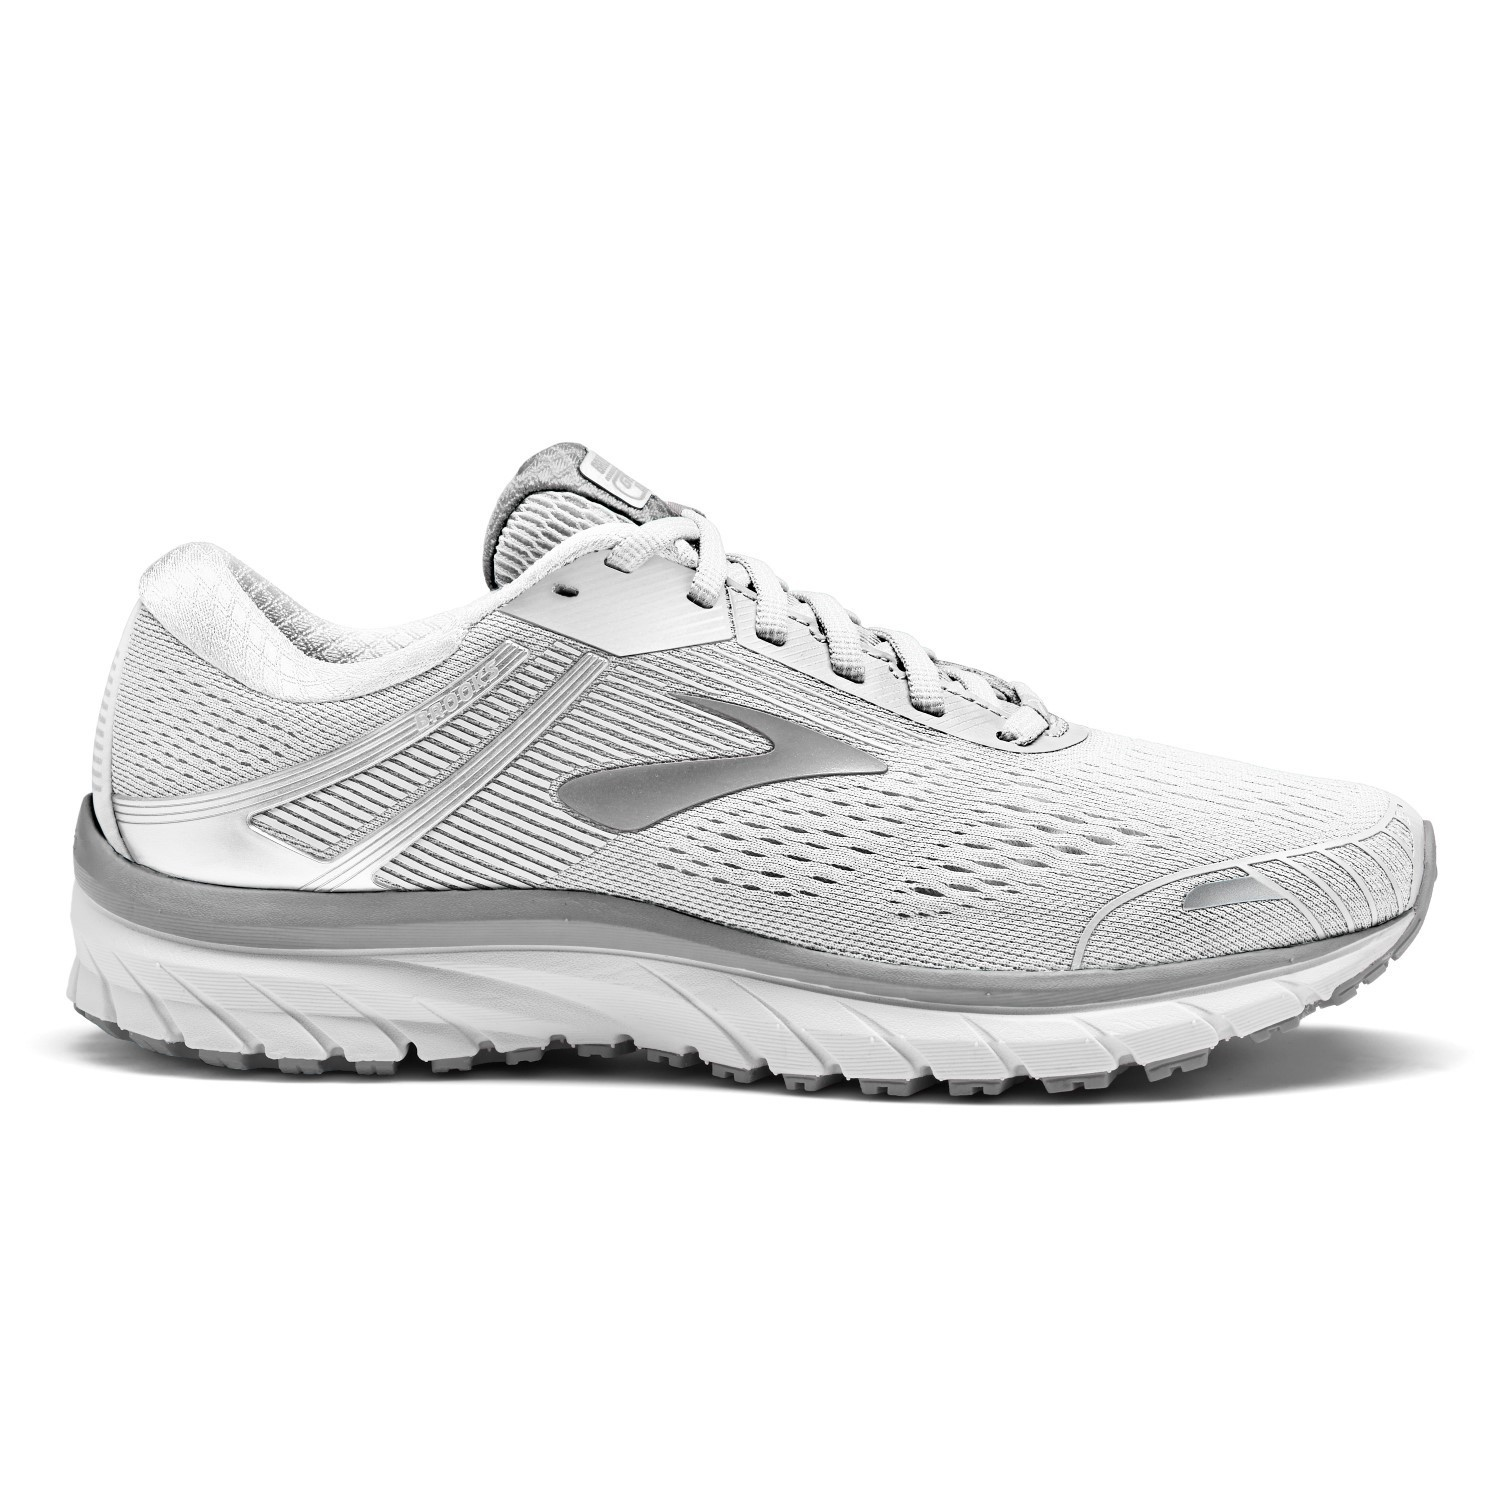 82224bd3b6a9e Brooks Adrenaline GTS 18 - Womens Running Shoes - White